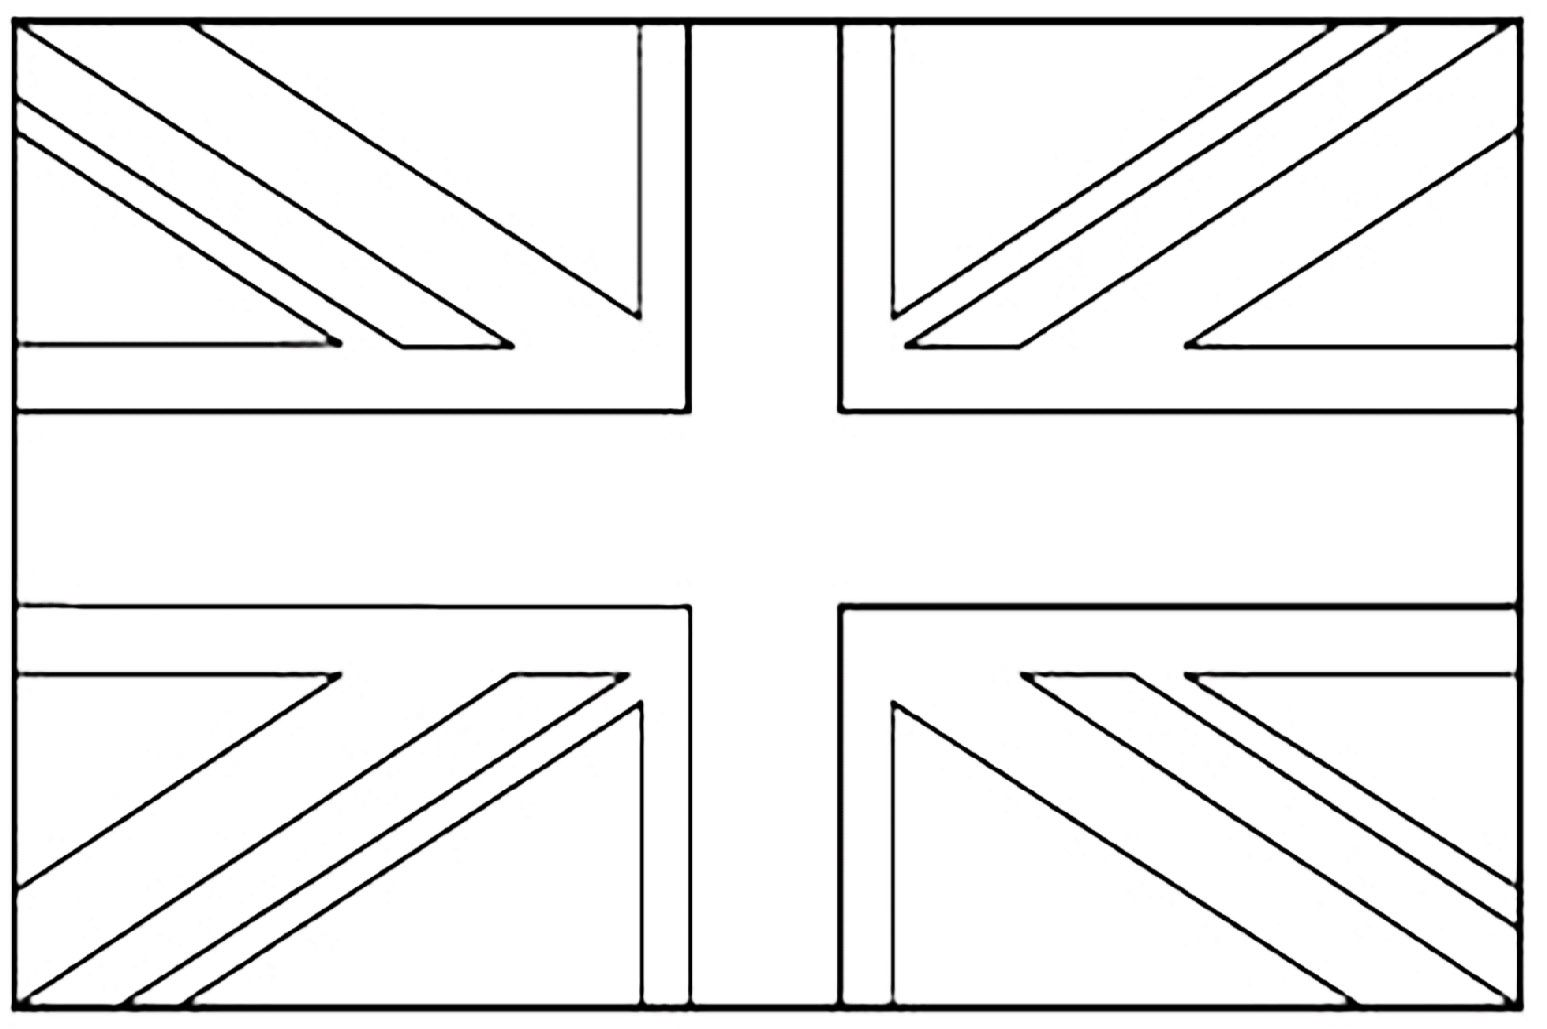 United Kingdom Union Jack Flags Coloring Pages For Kids Coloring